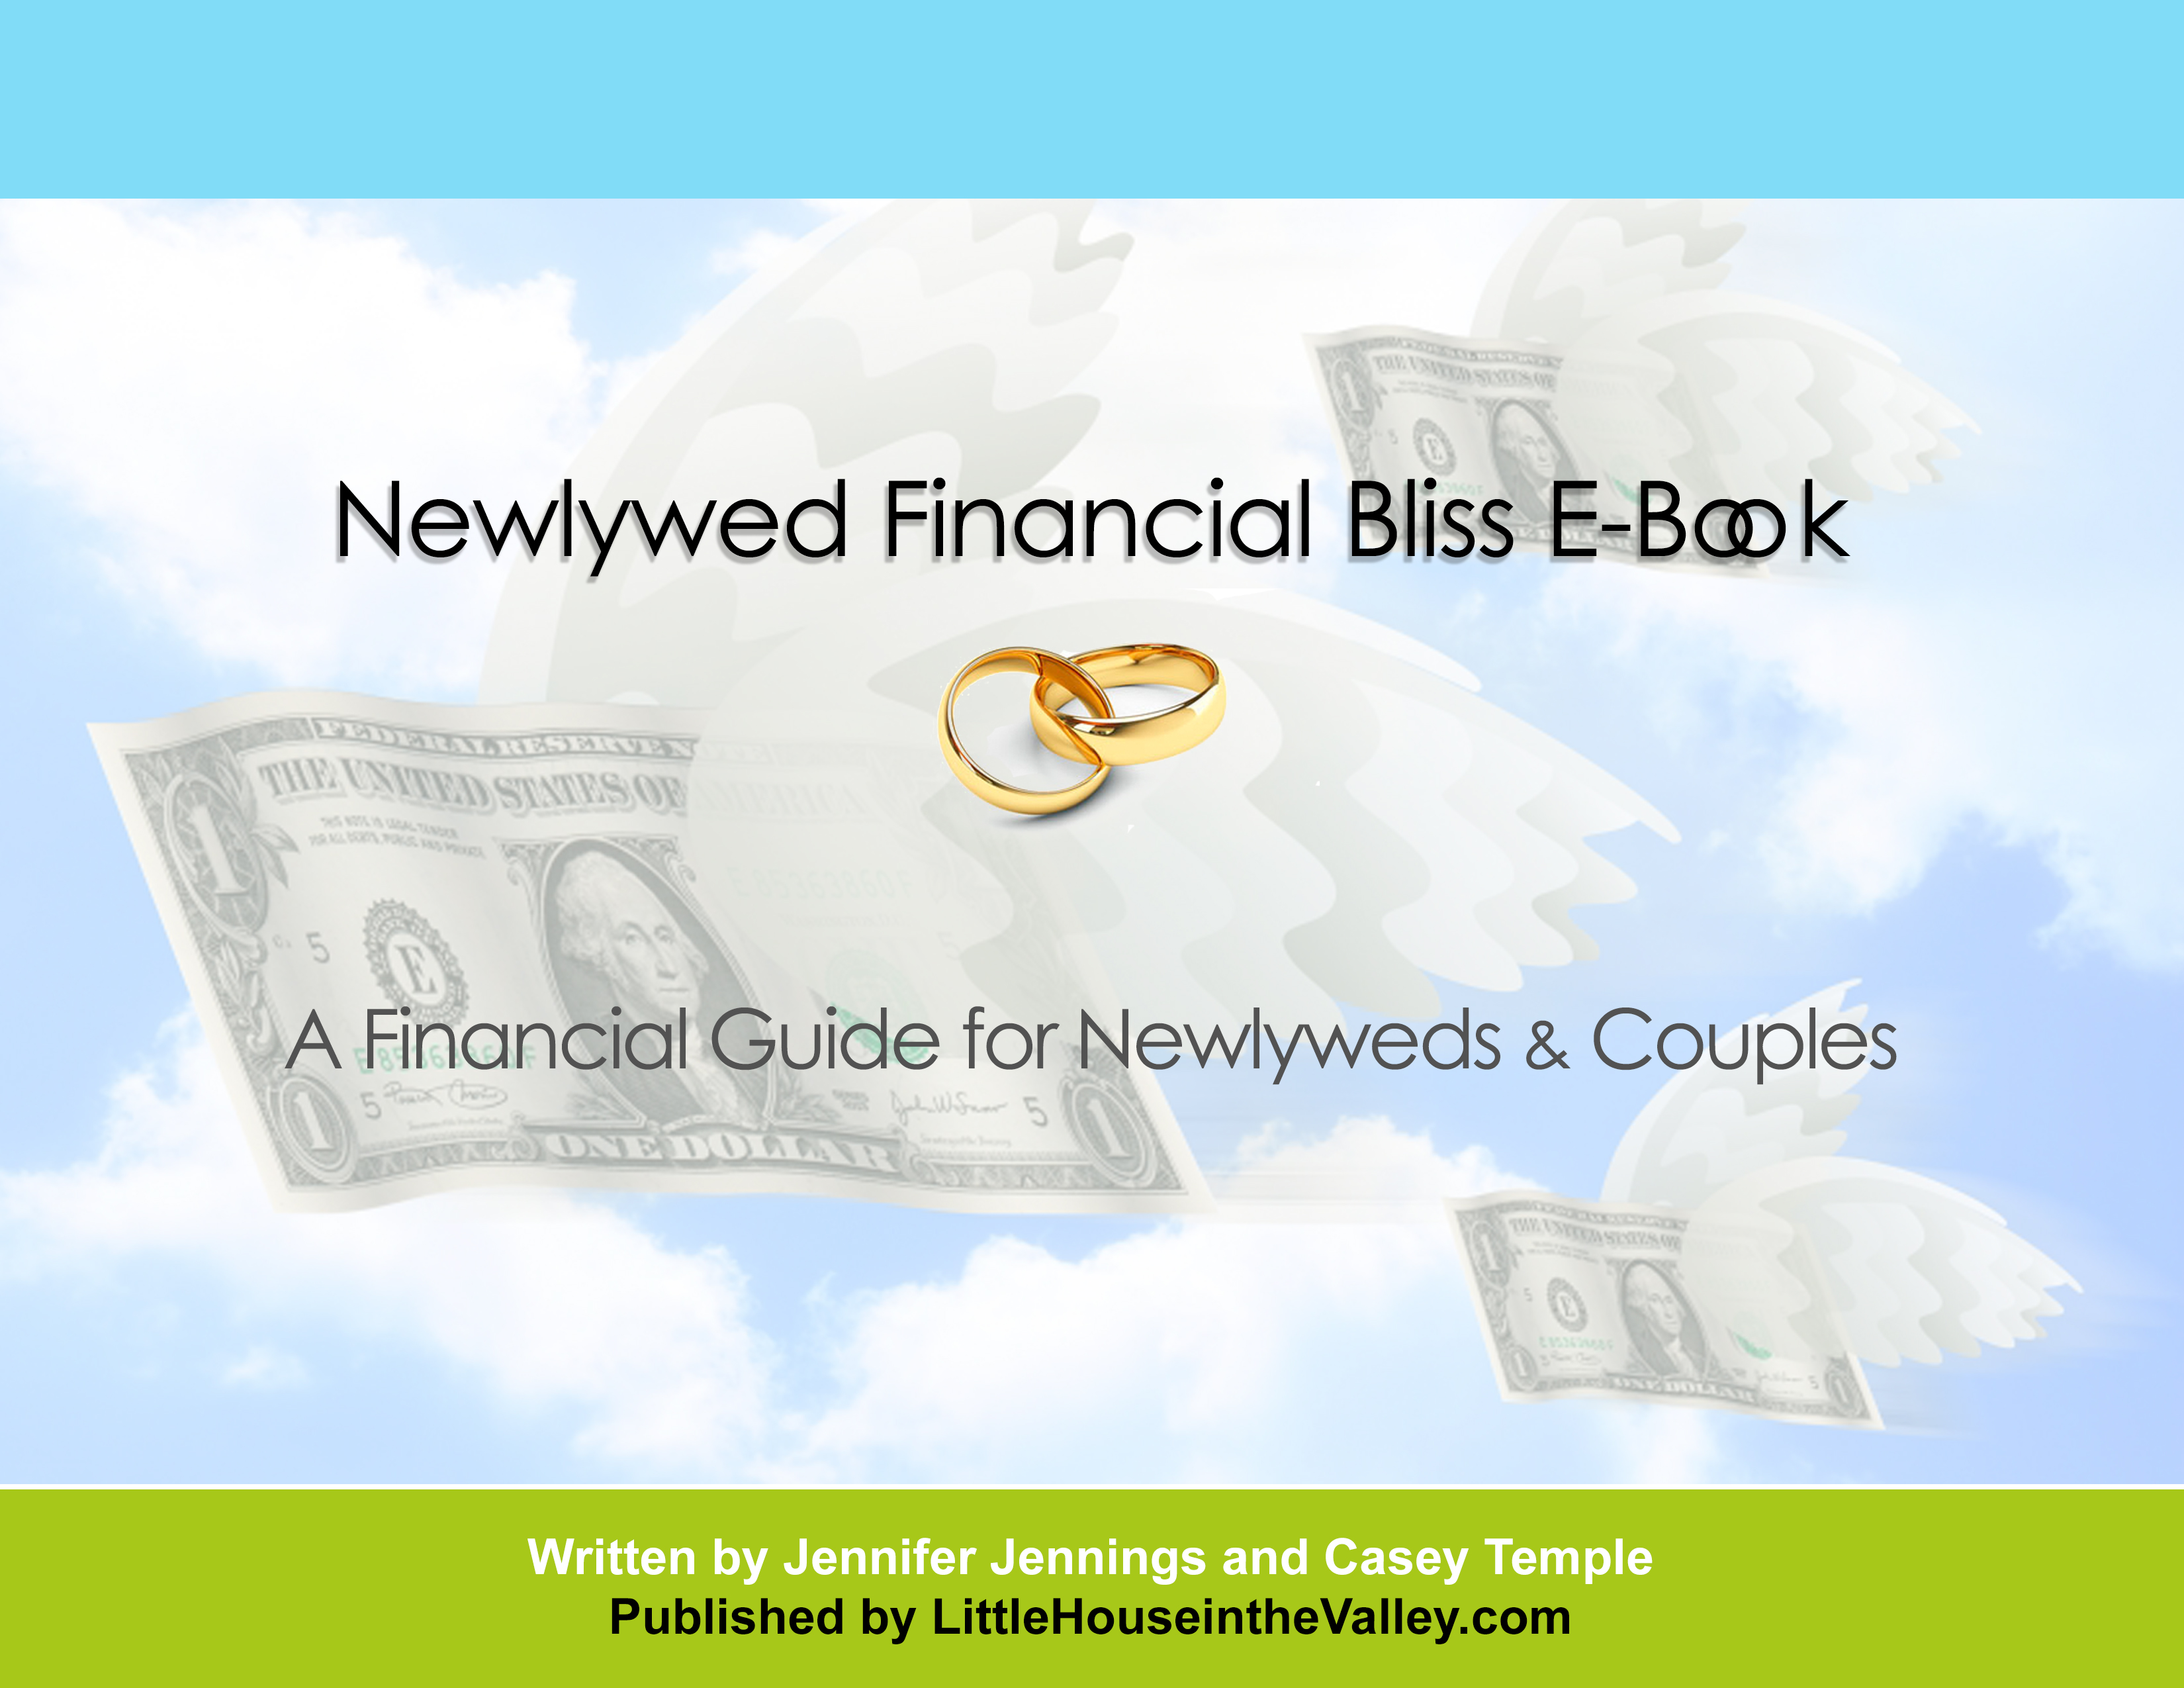 Newlywed Financial Bliss eBook Give-Away